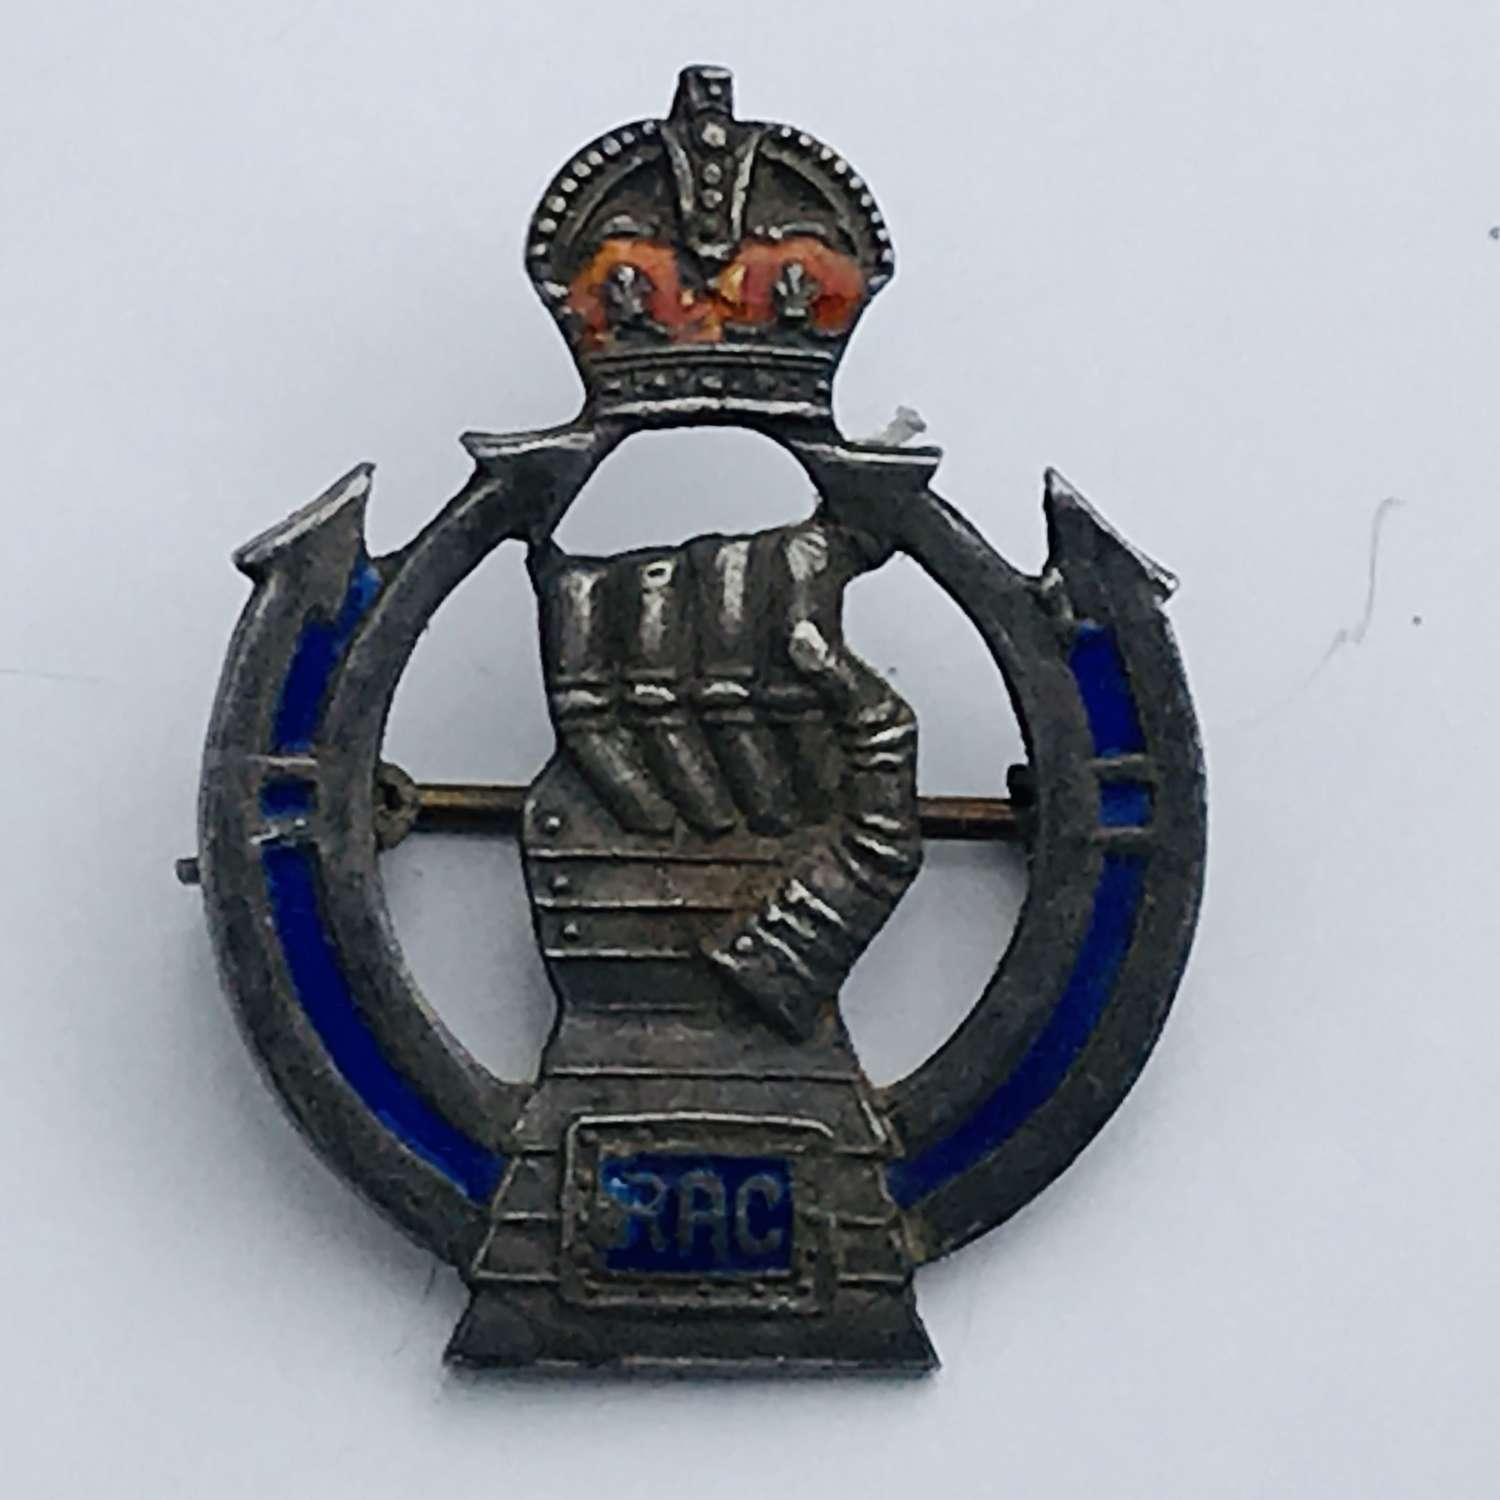 Royal armoured Corps sweetheart brooch